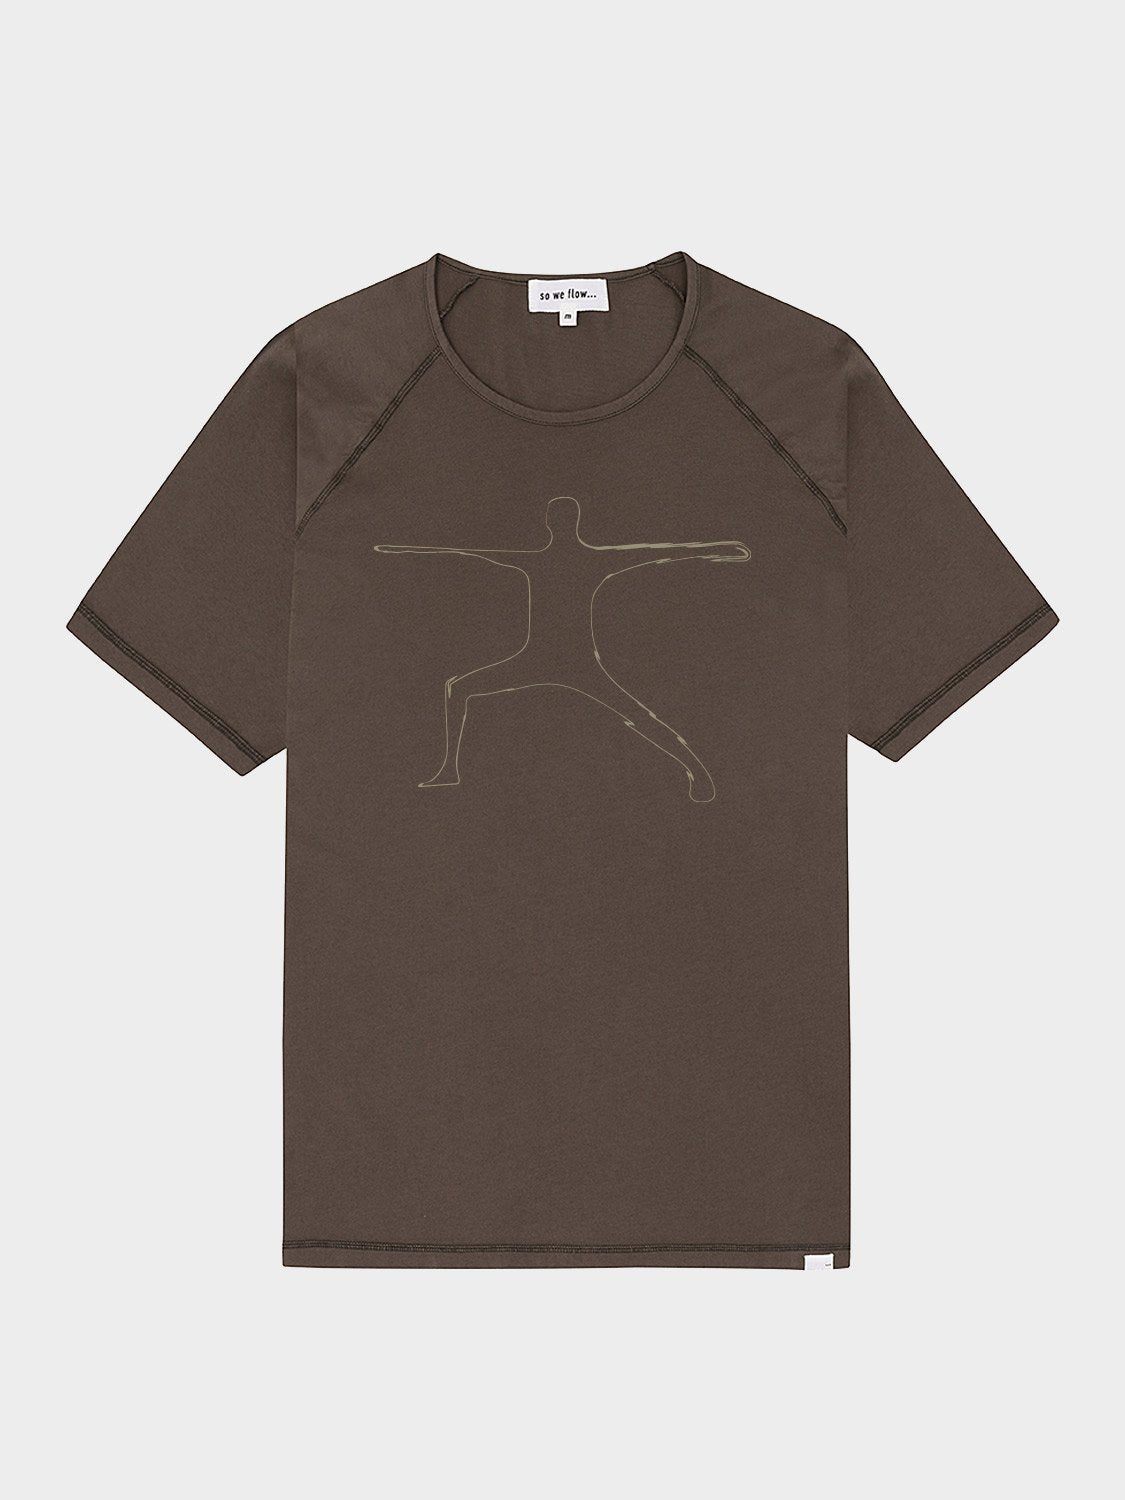 Warrior 2 T-Shirt - Grit by So We Flow...